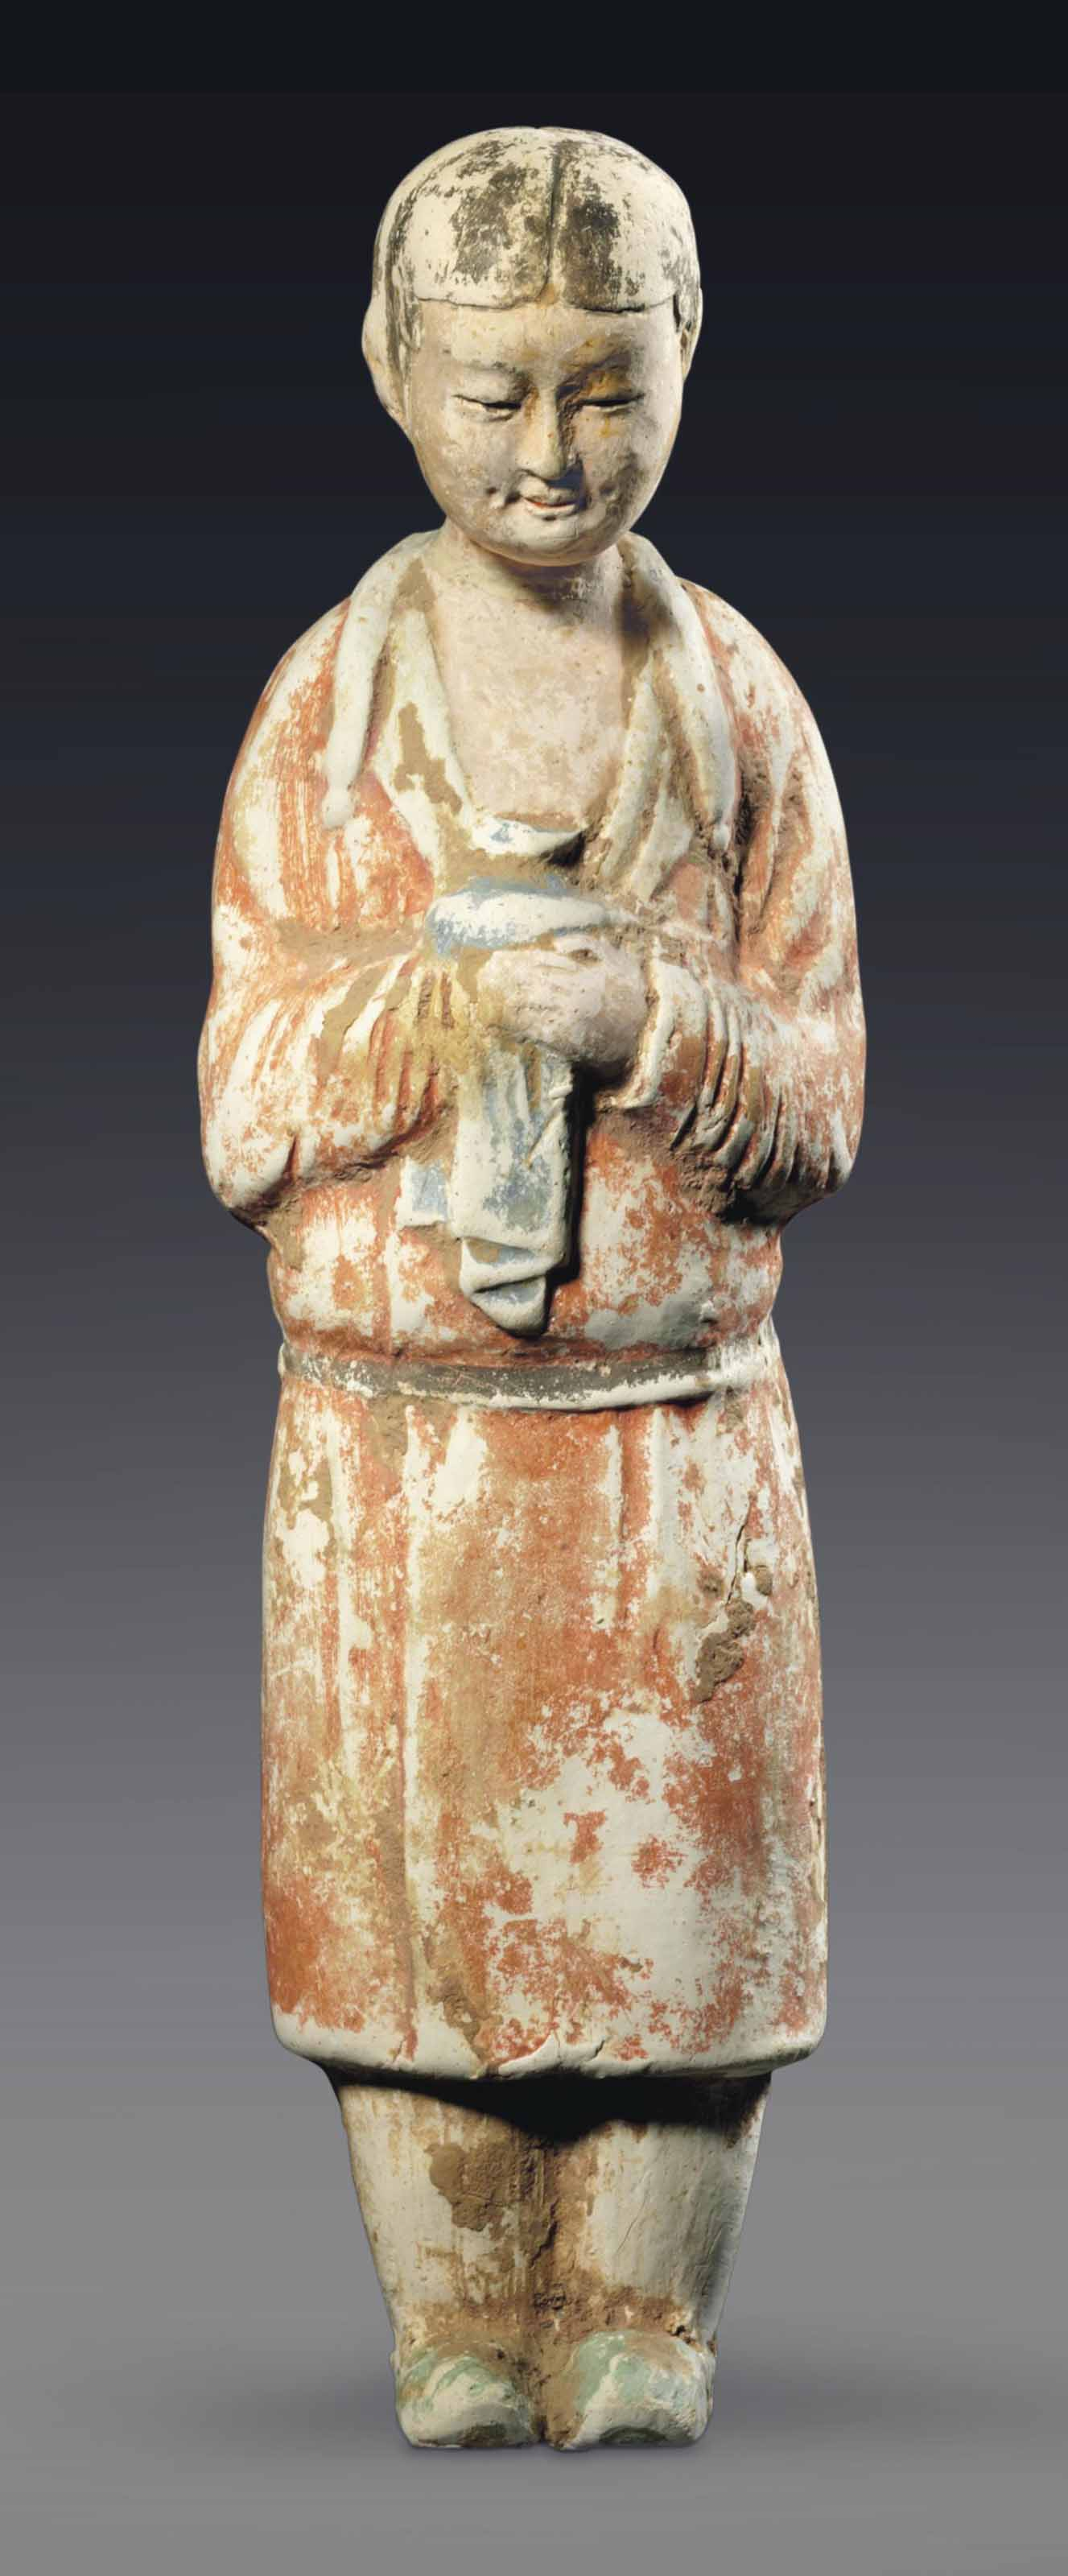 A RARE PAINTED POTTERY FIGURE OF A FEMALE ATTENDANT